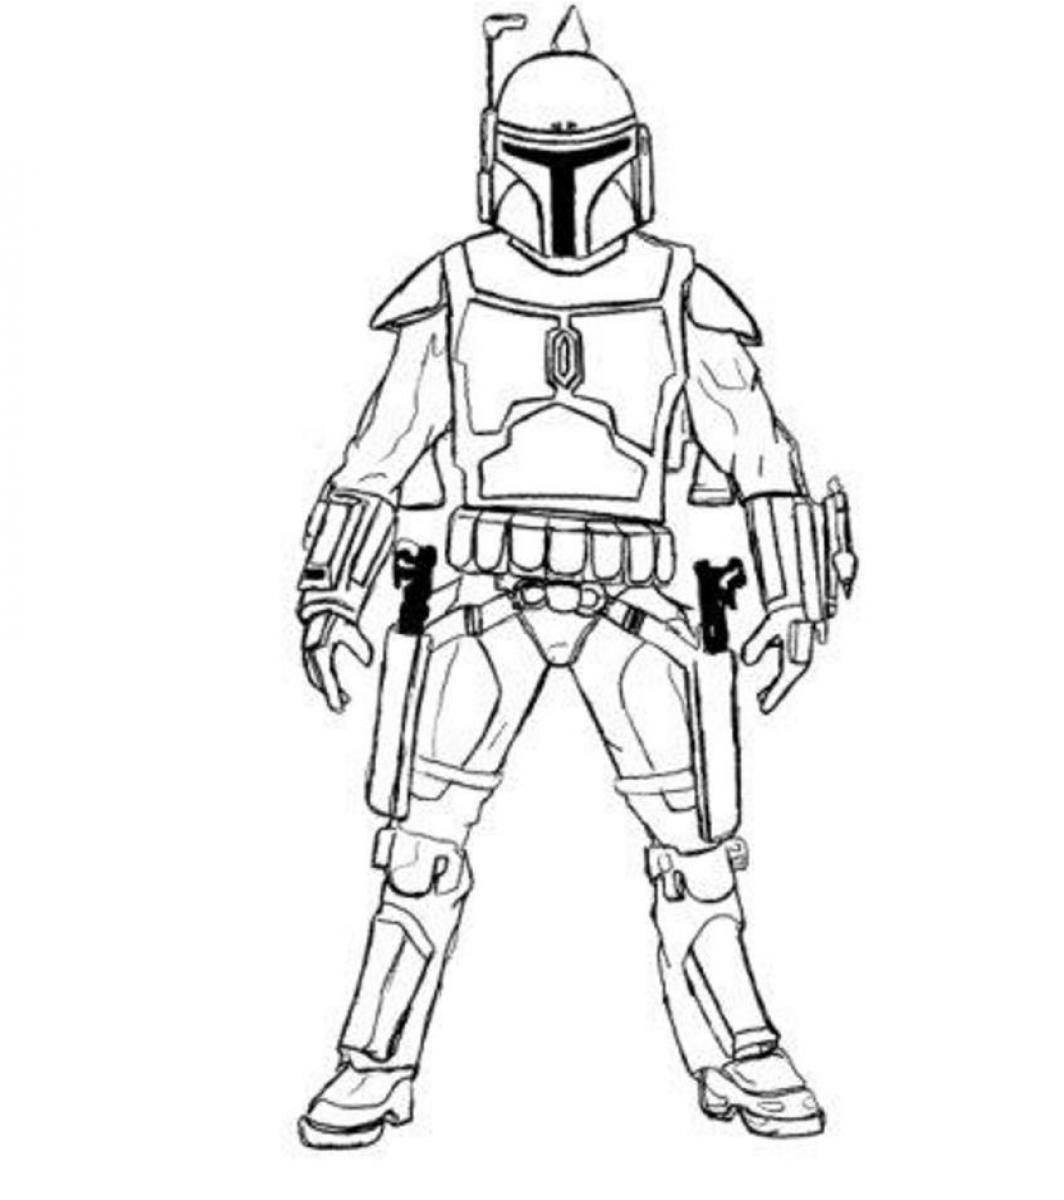 boba fett coloring pages boba fett by sean forney coloring boba fett pages